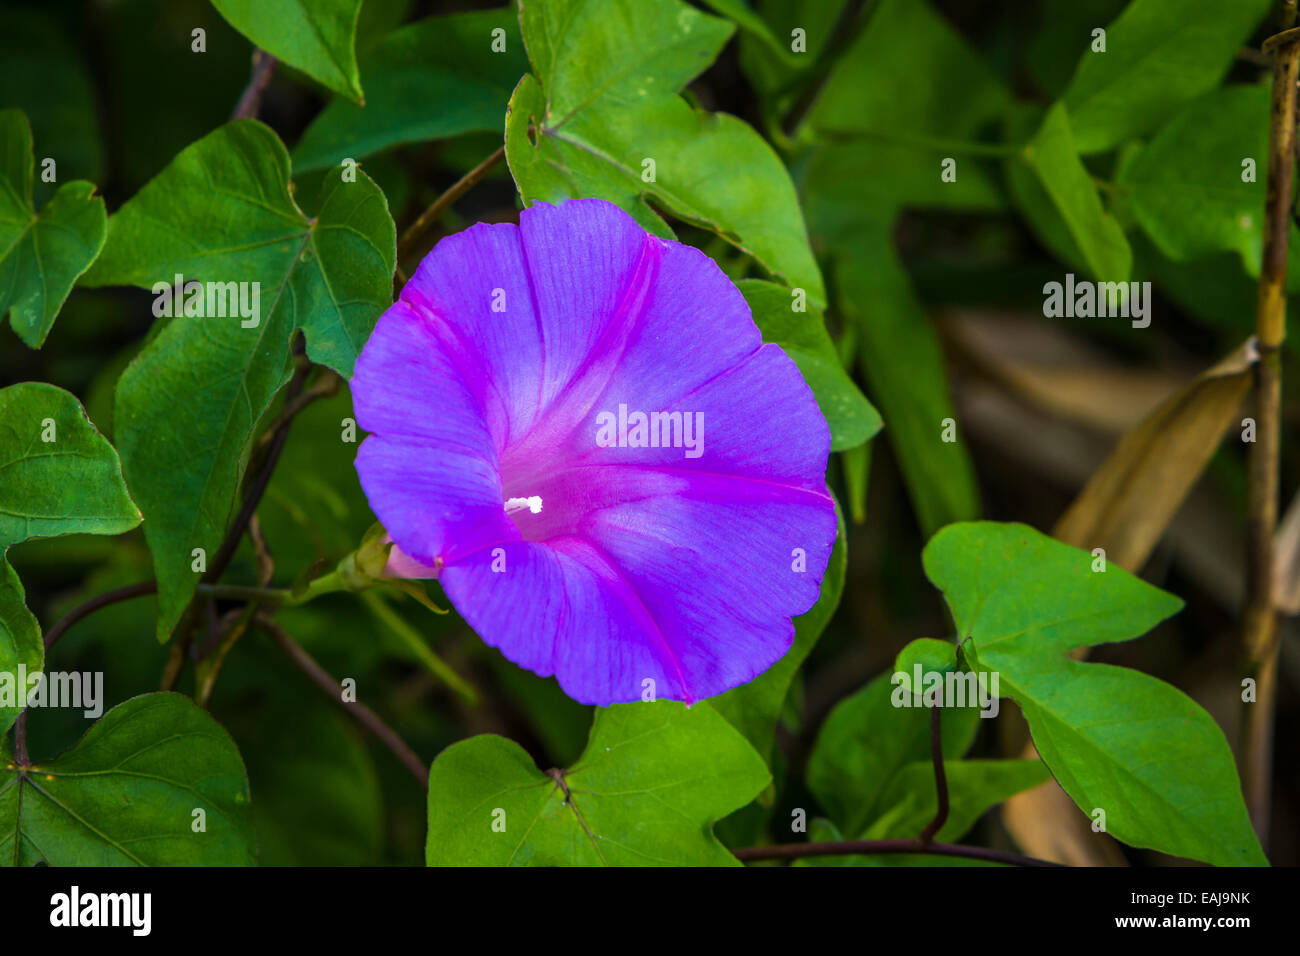 Closeup of a morning glory flower in the everglades along the Anhinga Trail in Everglades National Park, Florida, - Stock Image